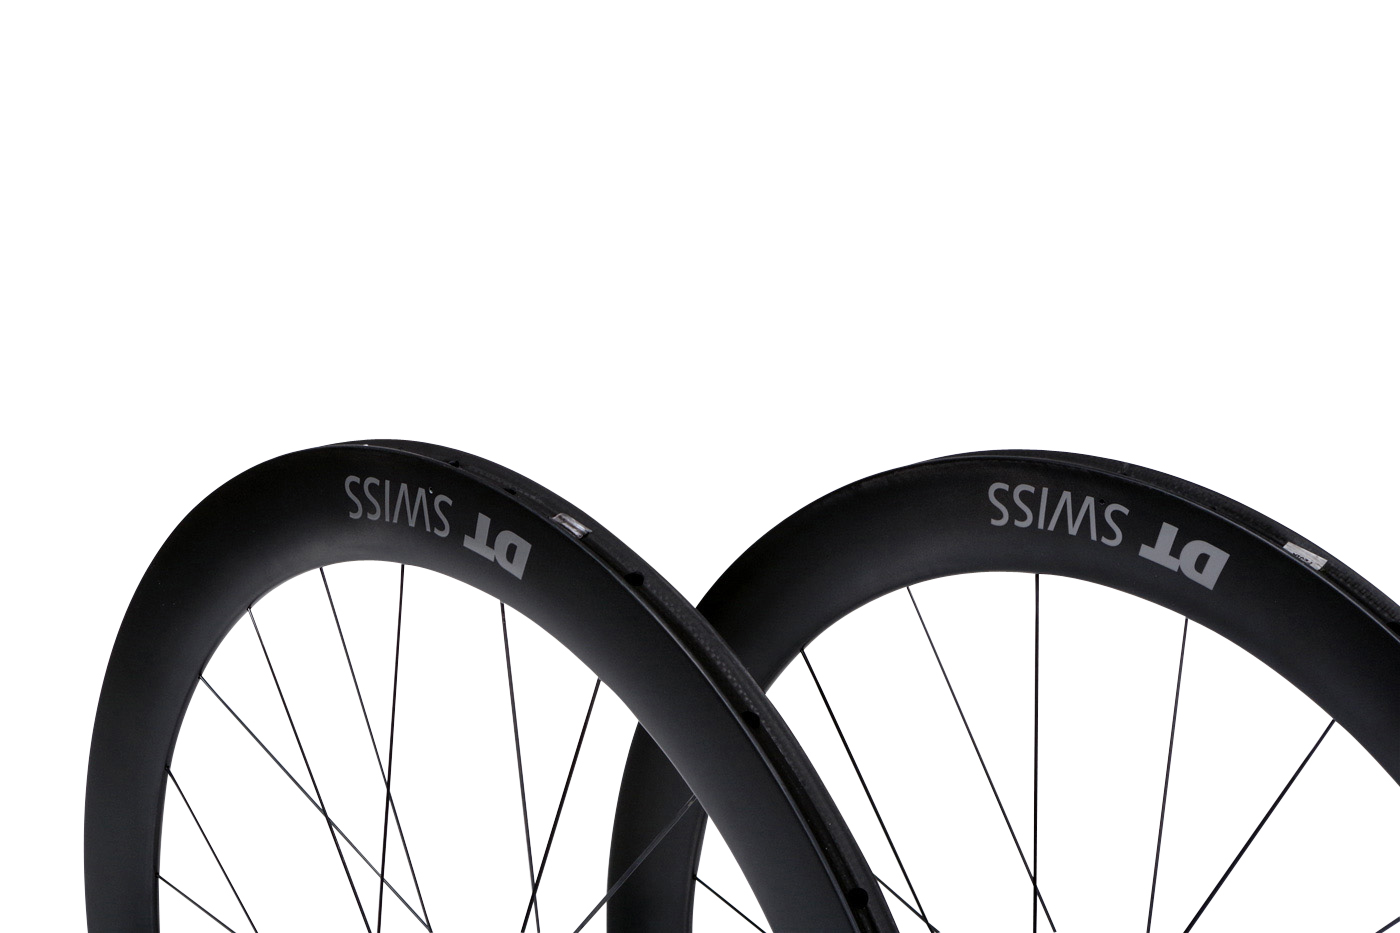 DT Swiss 02 - DT Swiss wheels - Now available at 8bar bikes